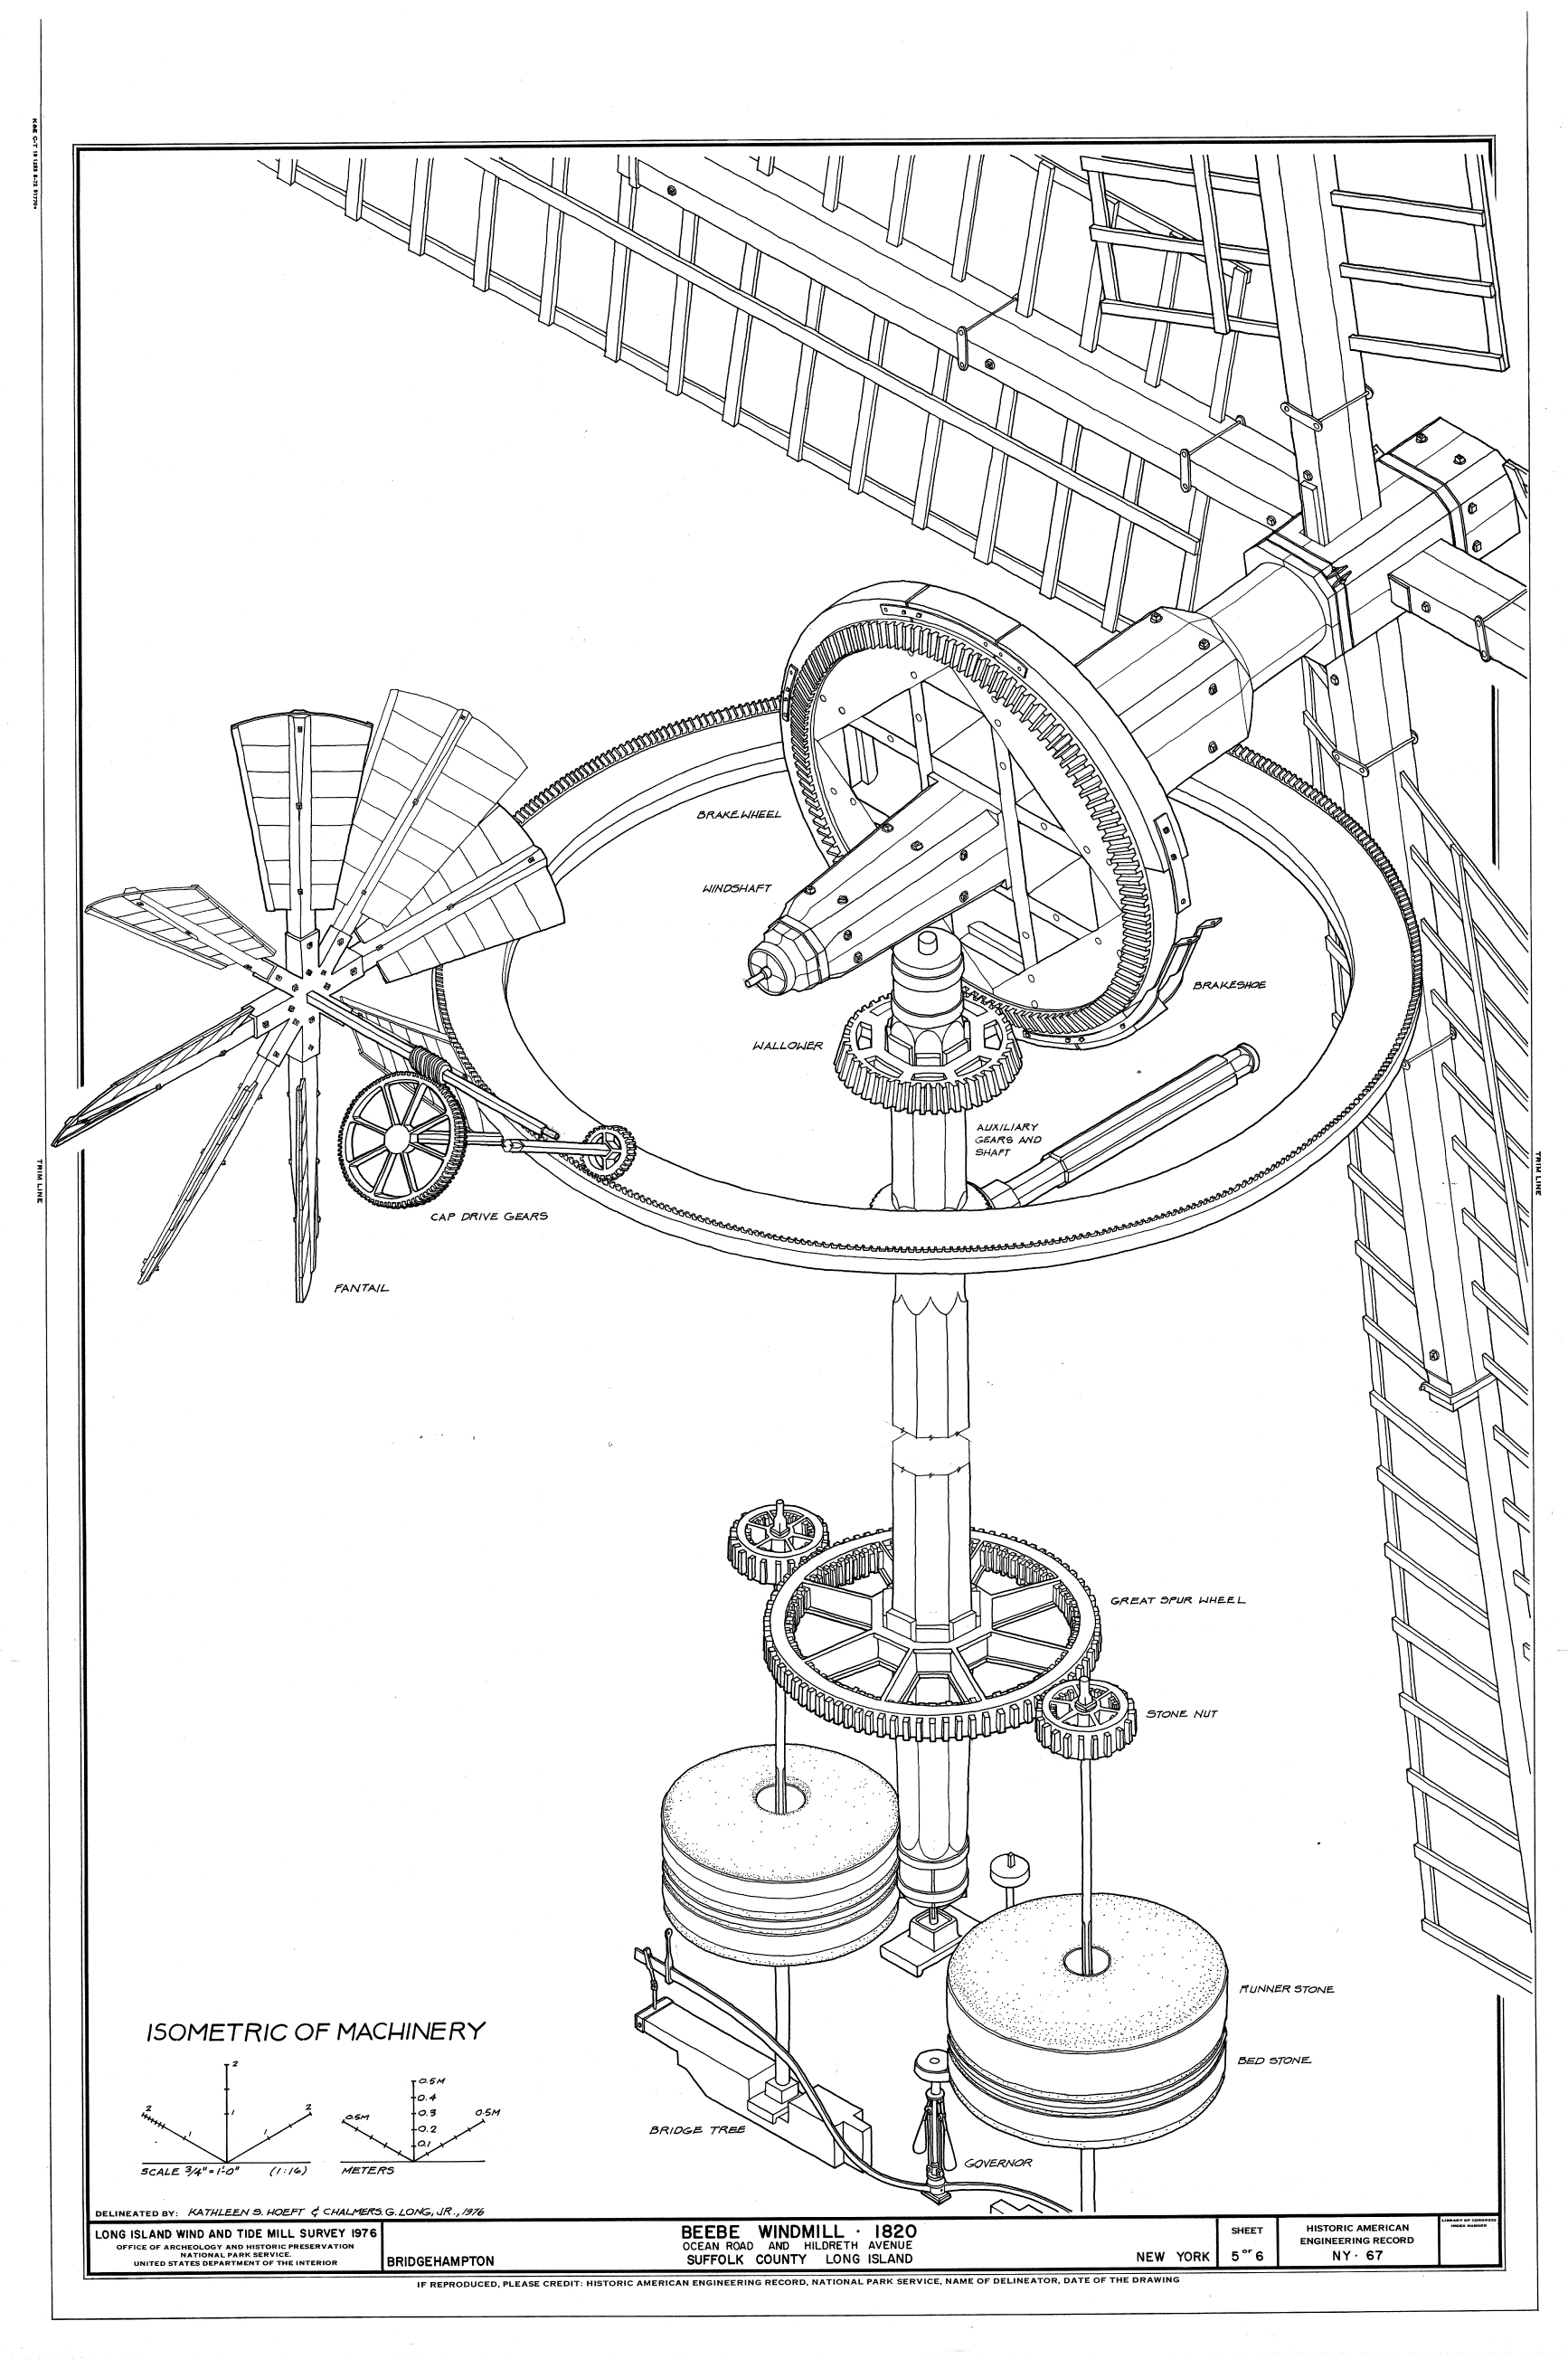 Drawn windmill simple Windmill illustration (and factories: industrial